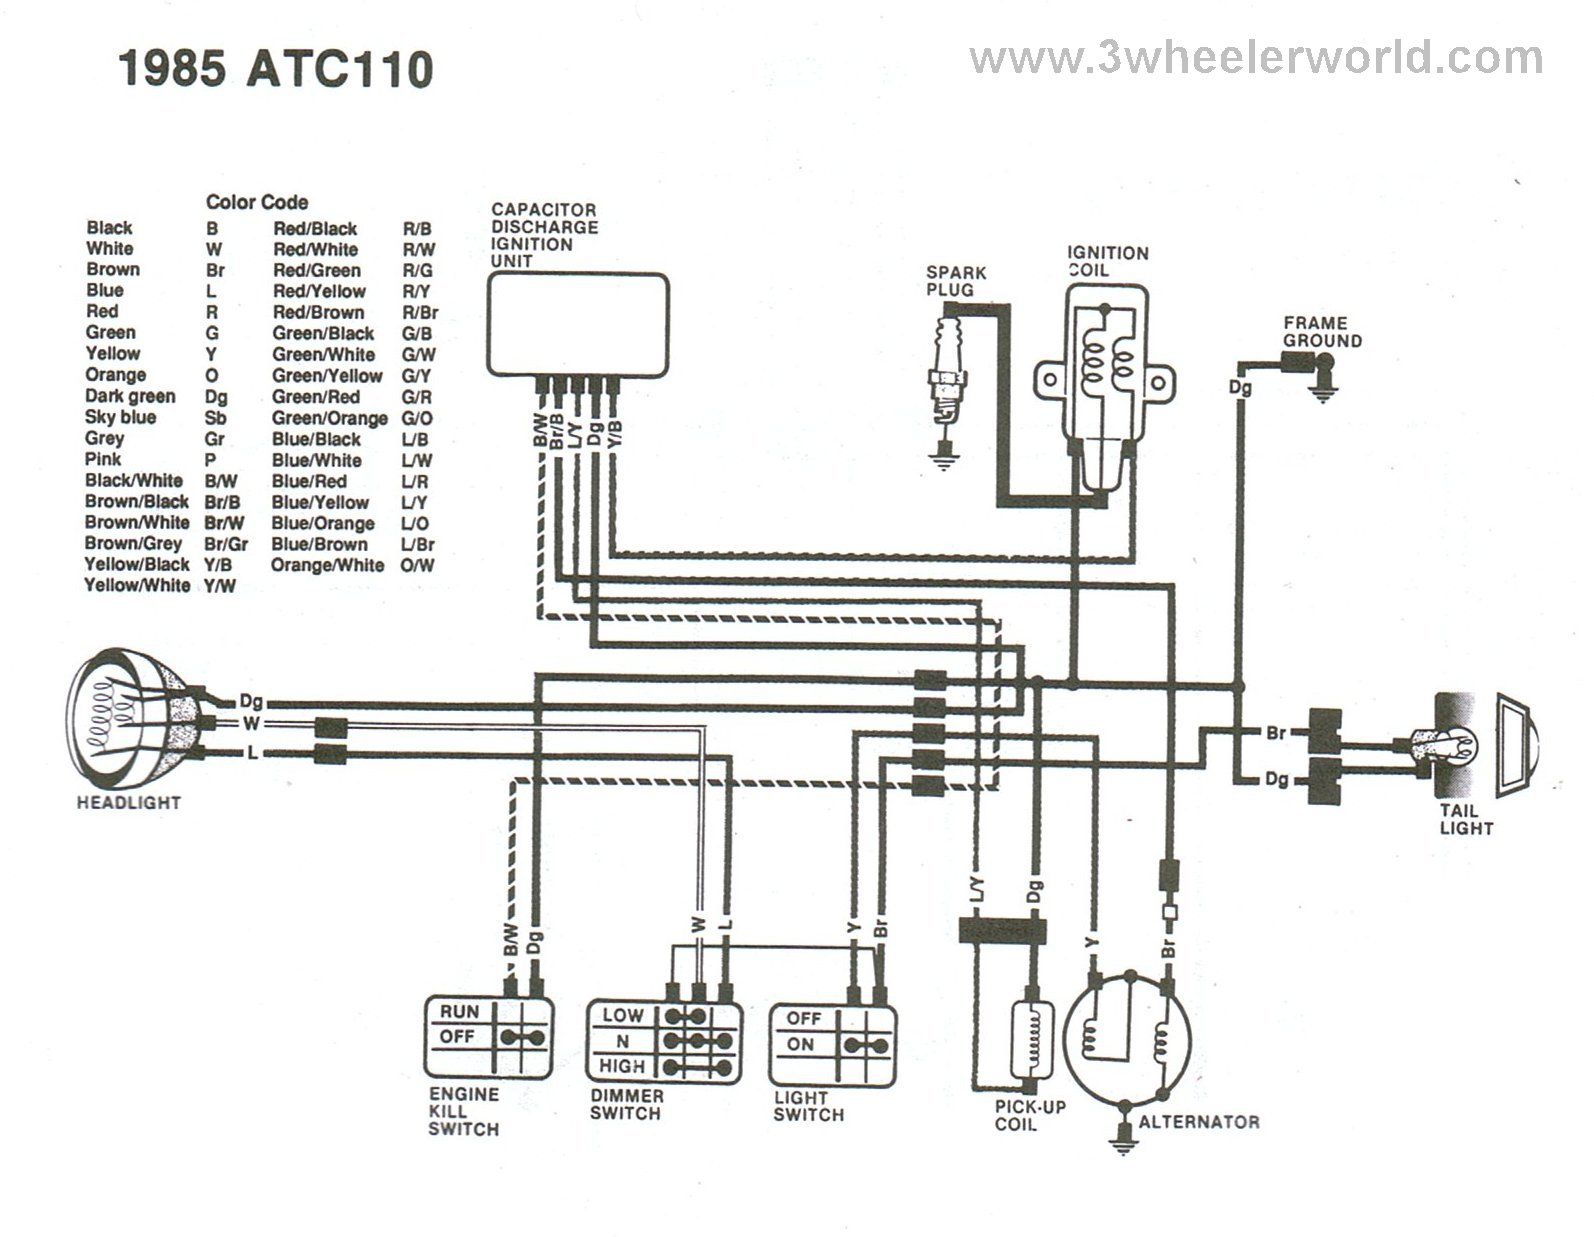 Grote 76983 Wiring Diagram Schematics Diagrams Turn Signal Switch 44890 Gm Chevrolet